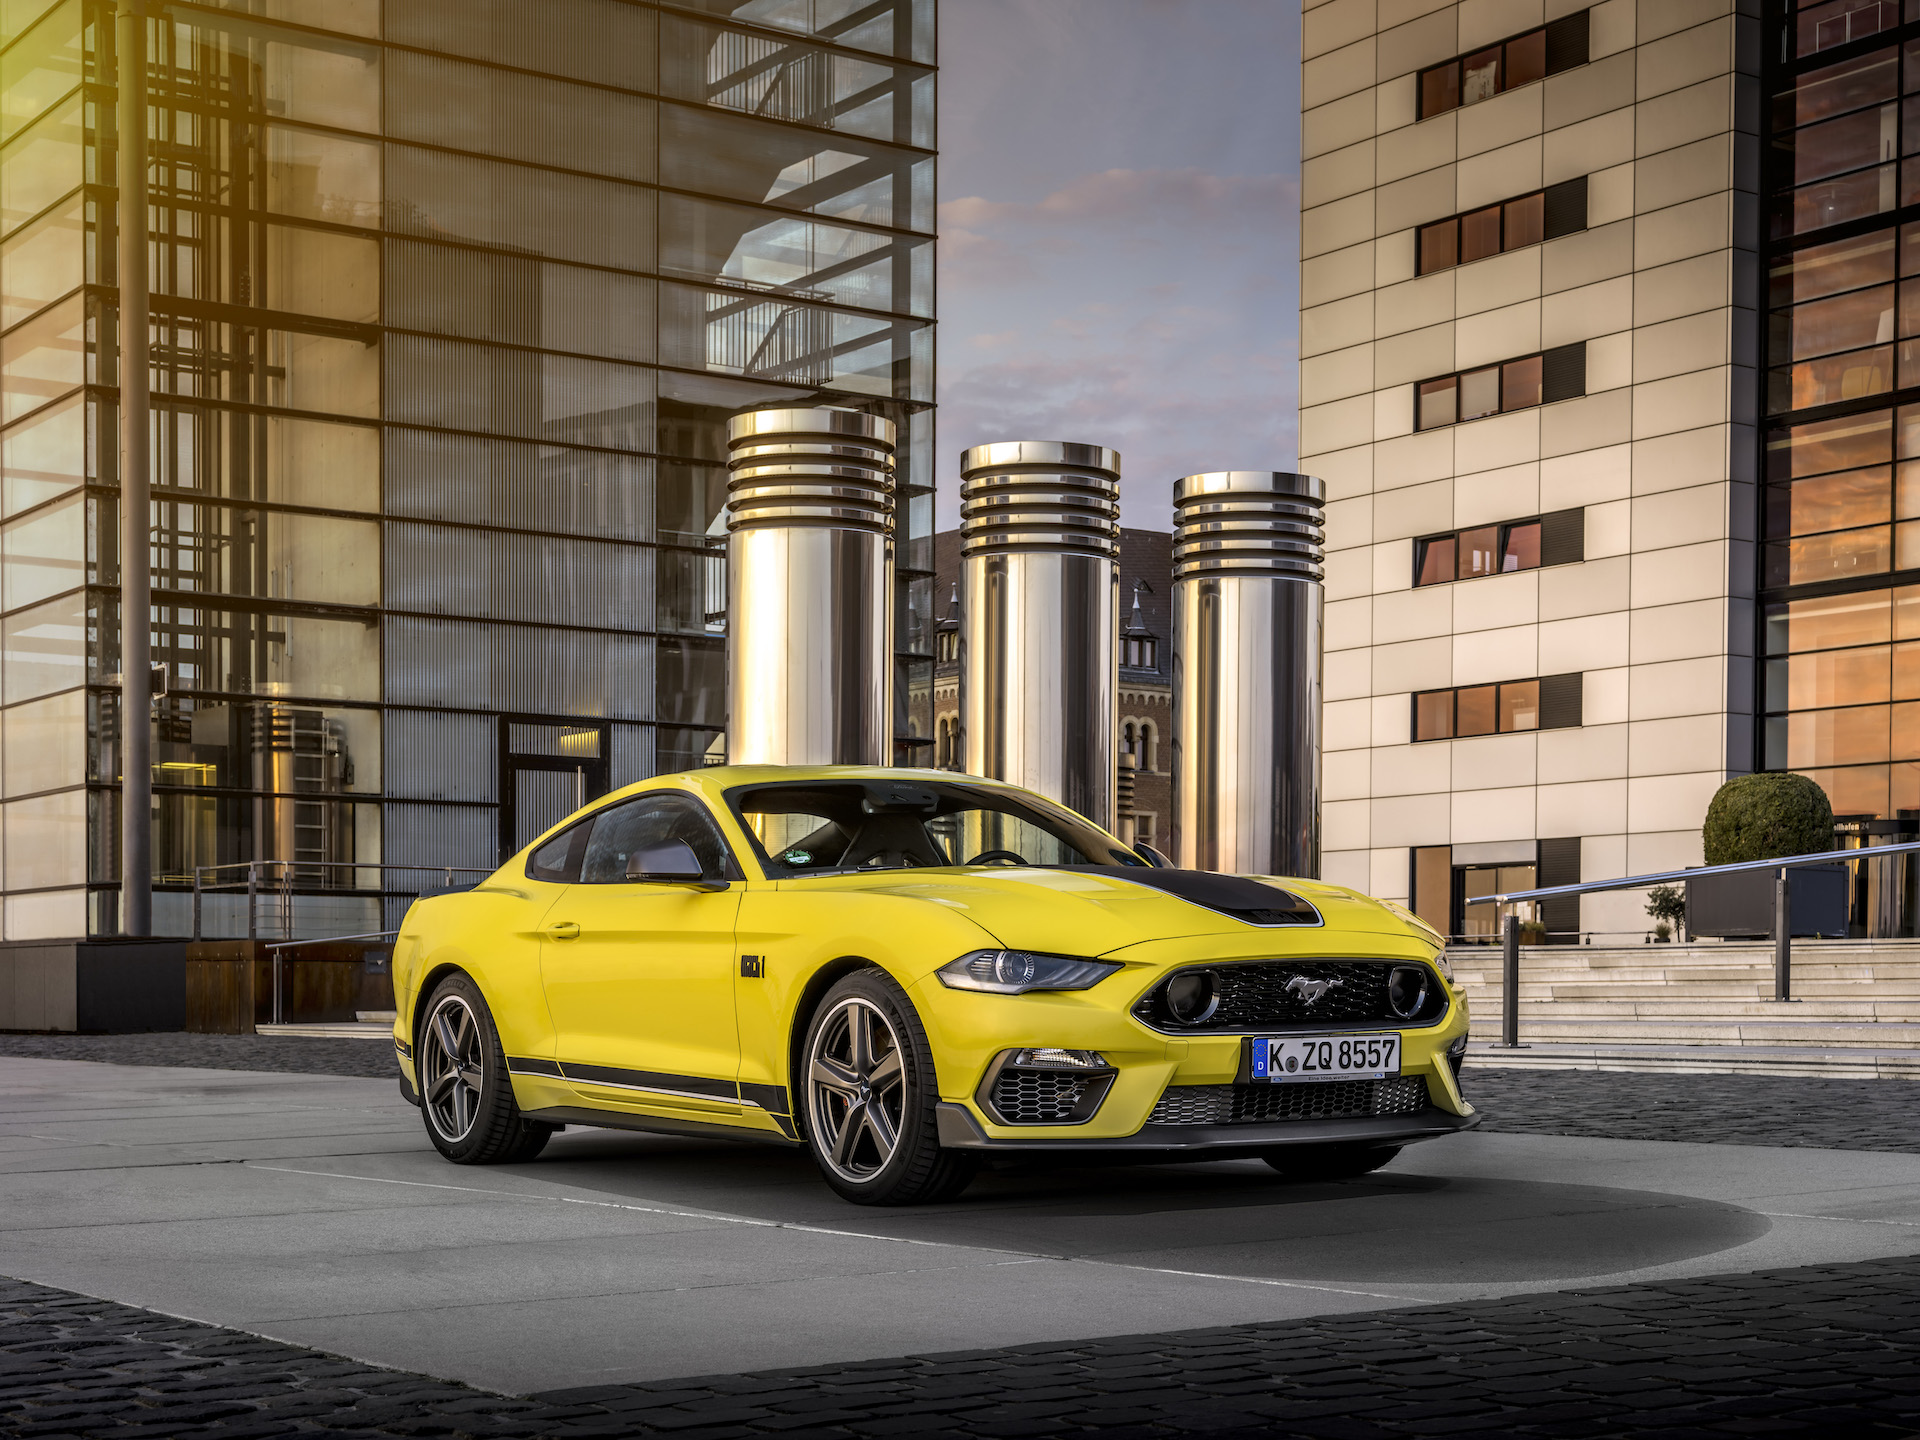 High Performance Icon To Reach European Customers For The First Time As Ford Mustang Mach 1 Debuts At Goodwood